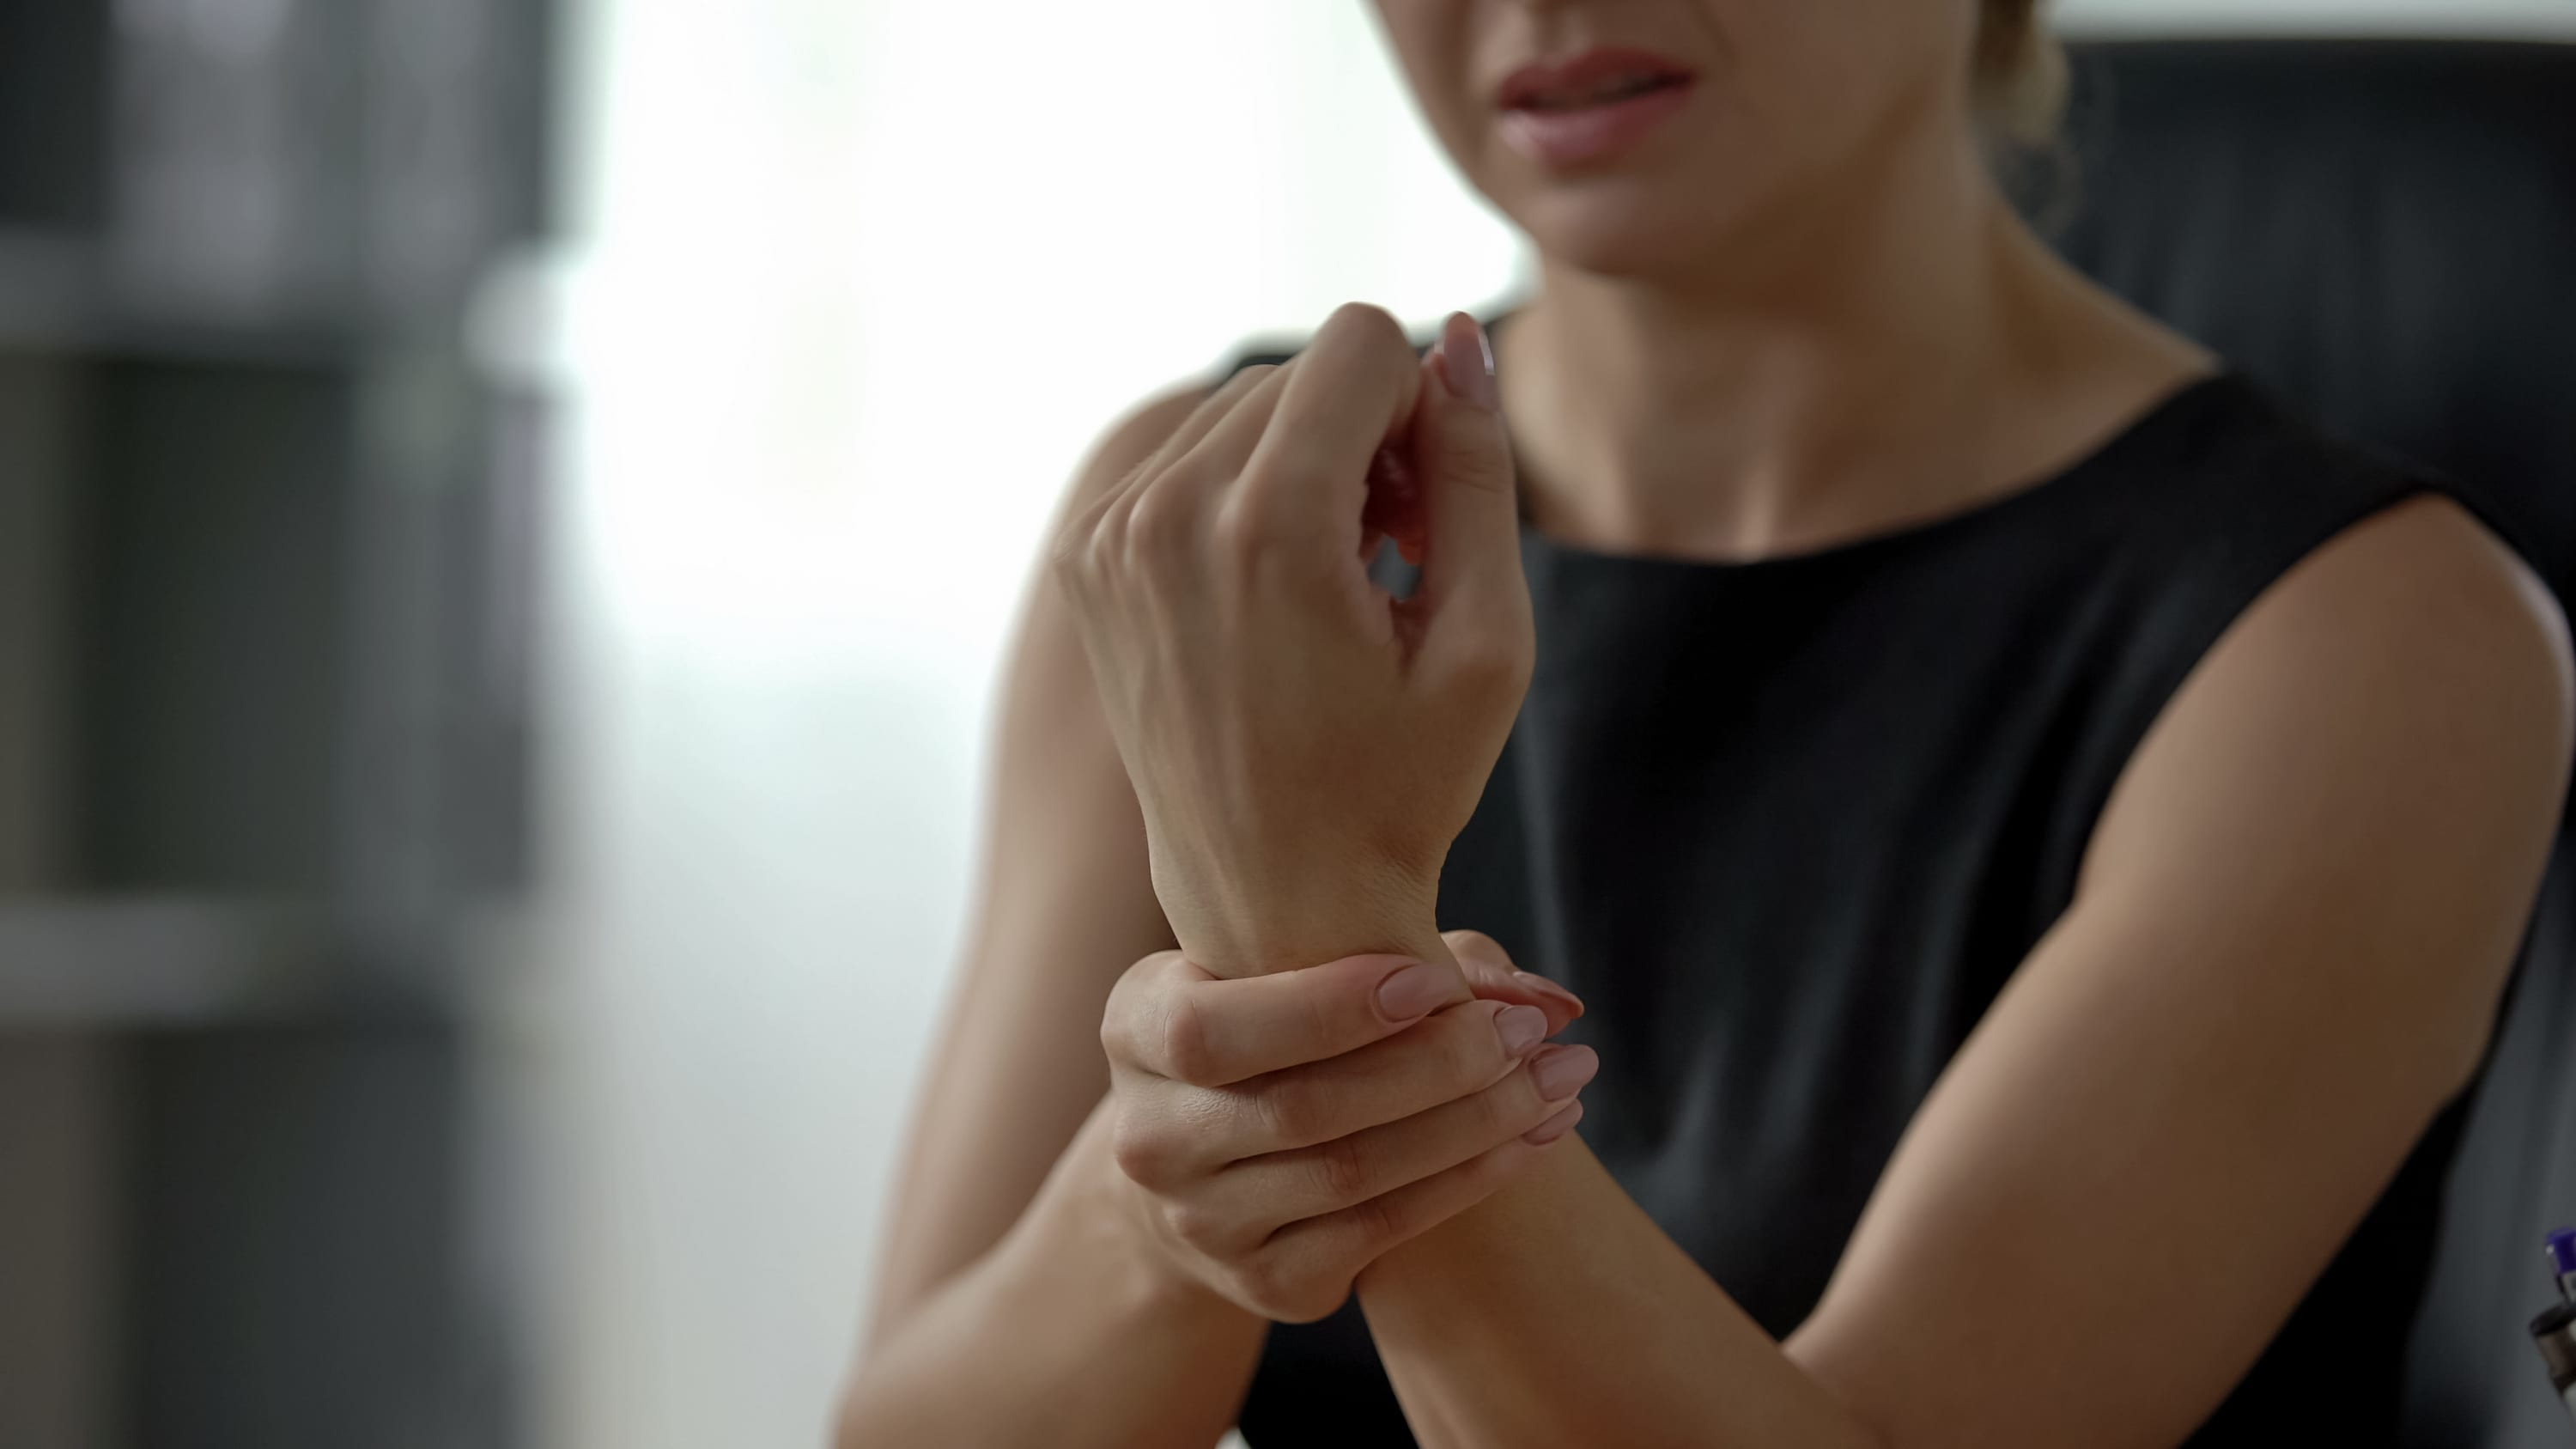 woman with wrist pain, possibly from a ganglion cyst